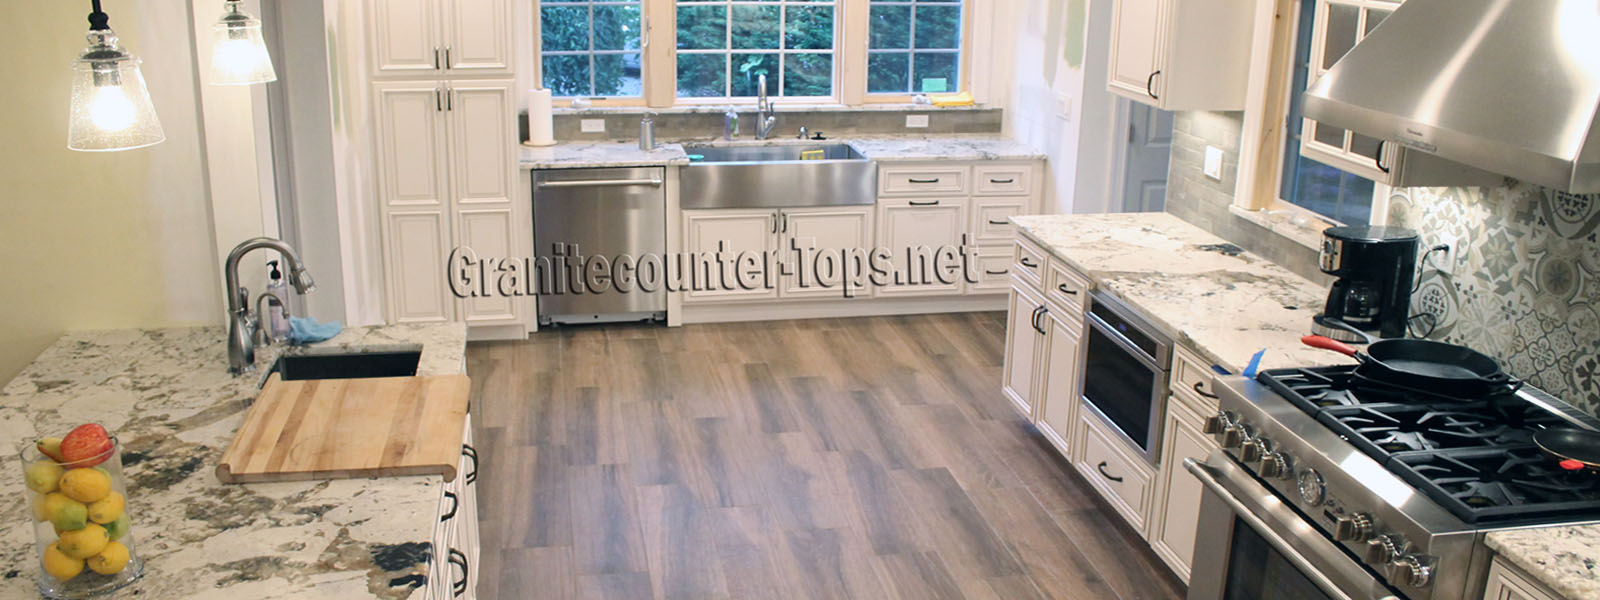 Top Quality Marble Countertops At Extremely Affordable Prices